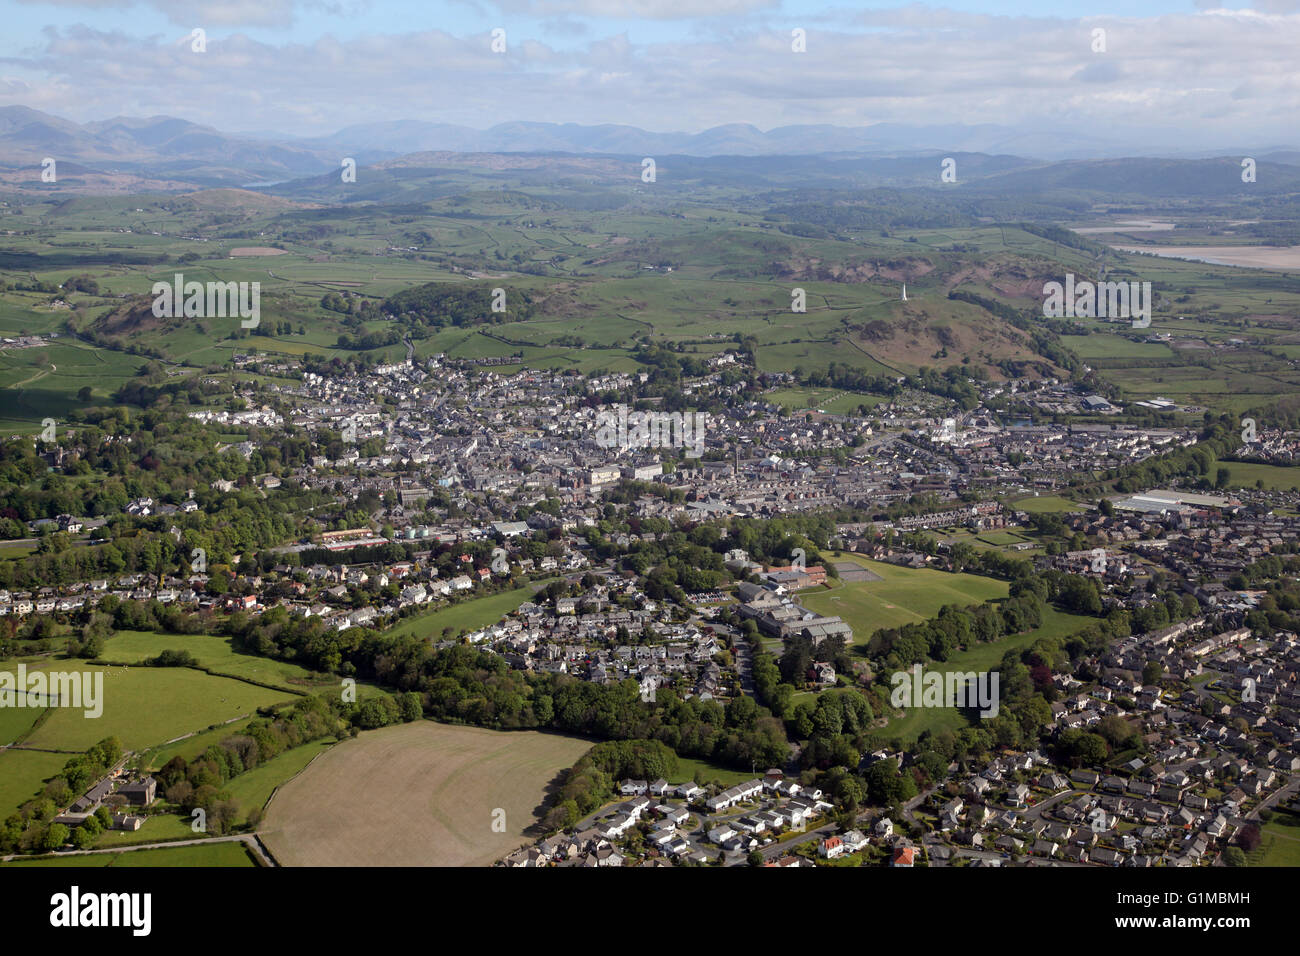 A town in the lake district